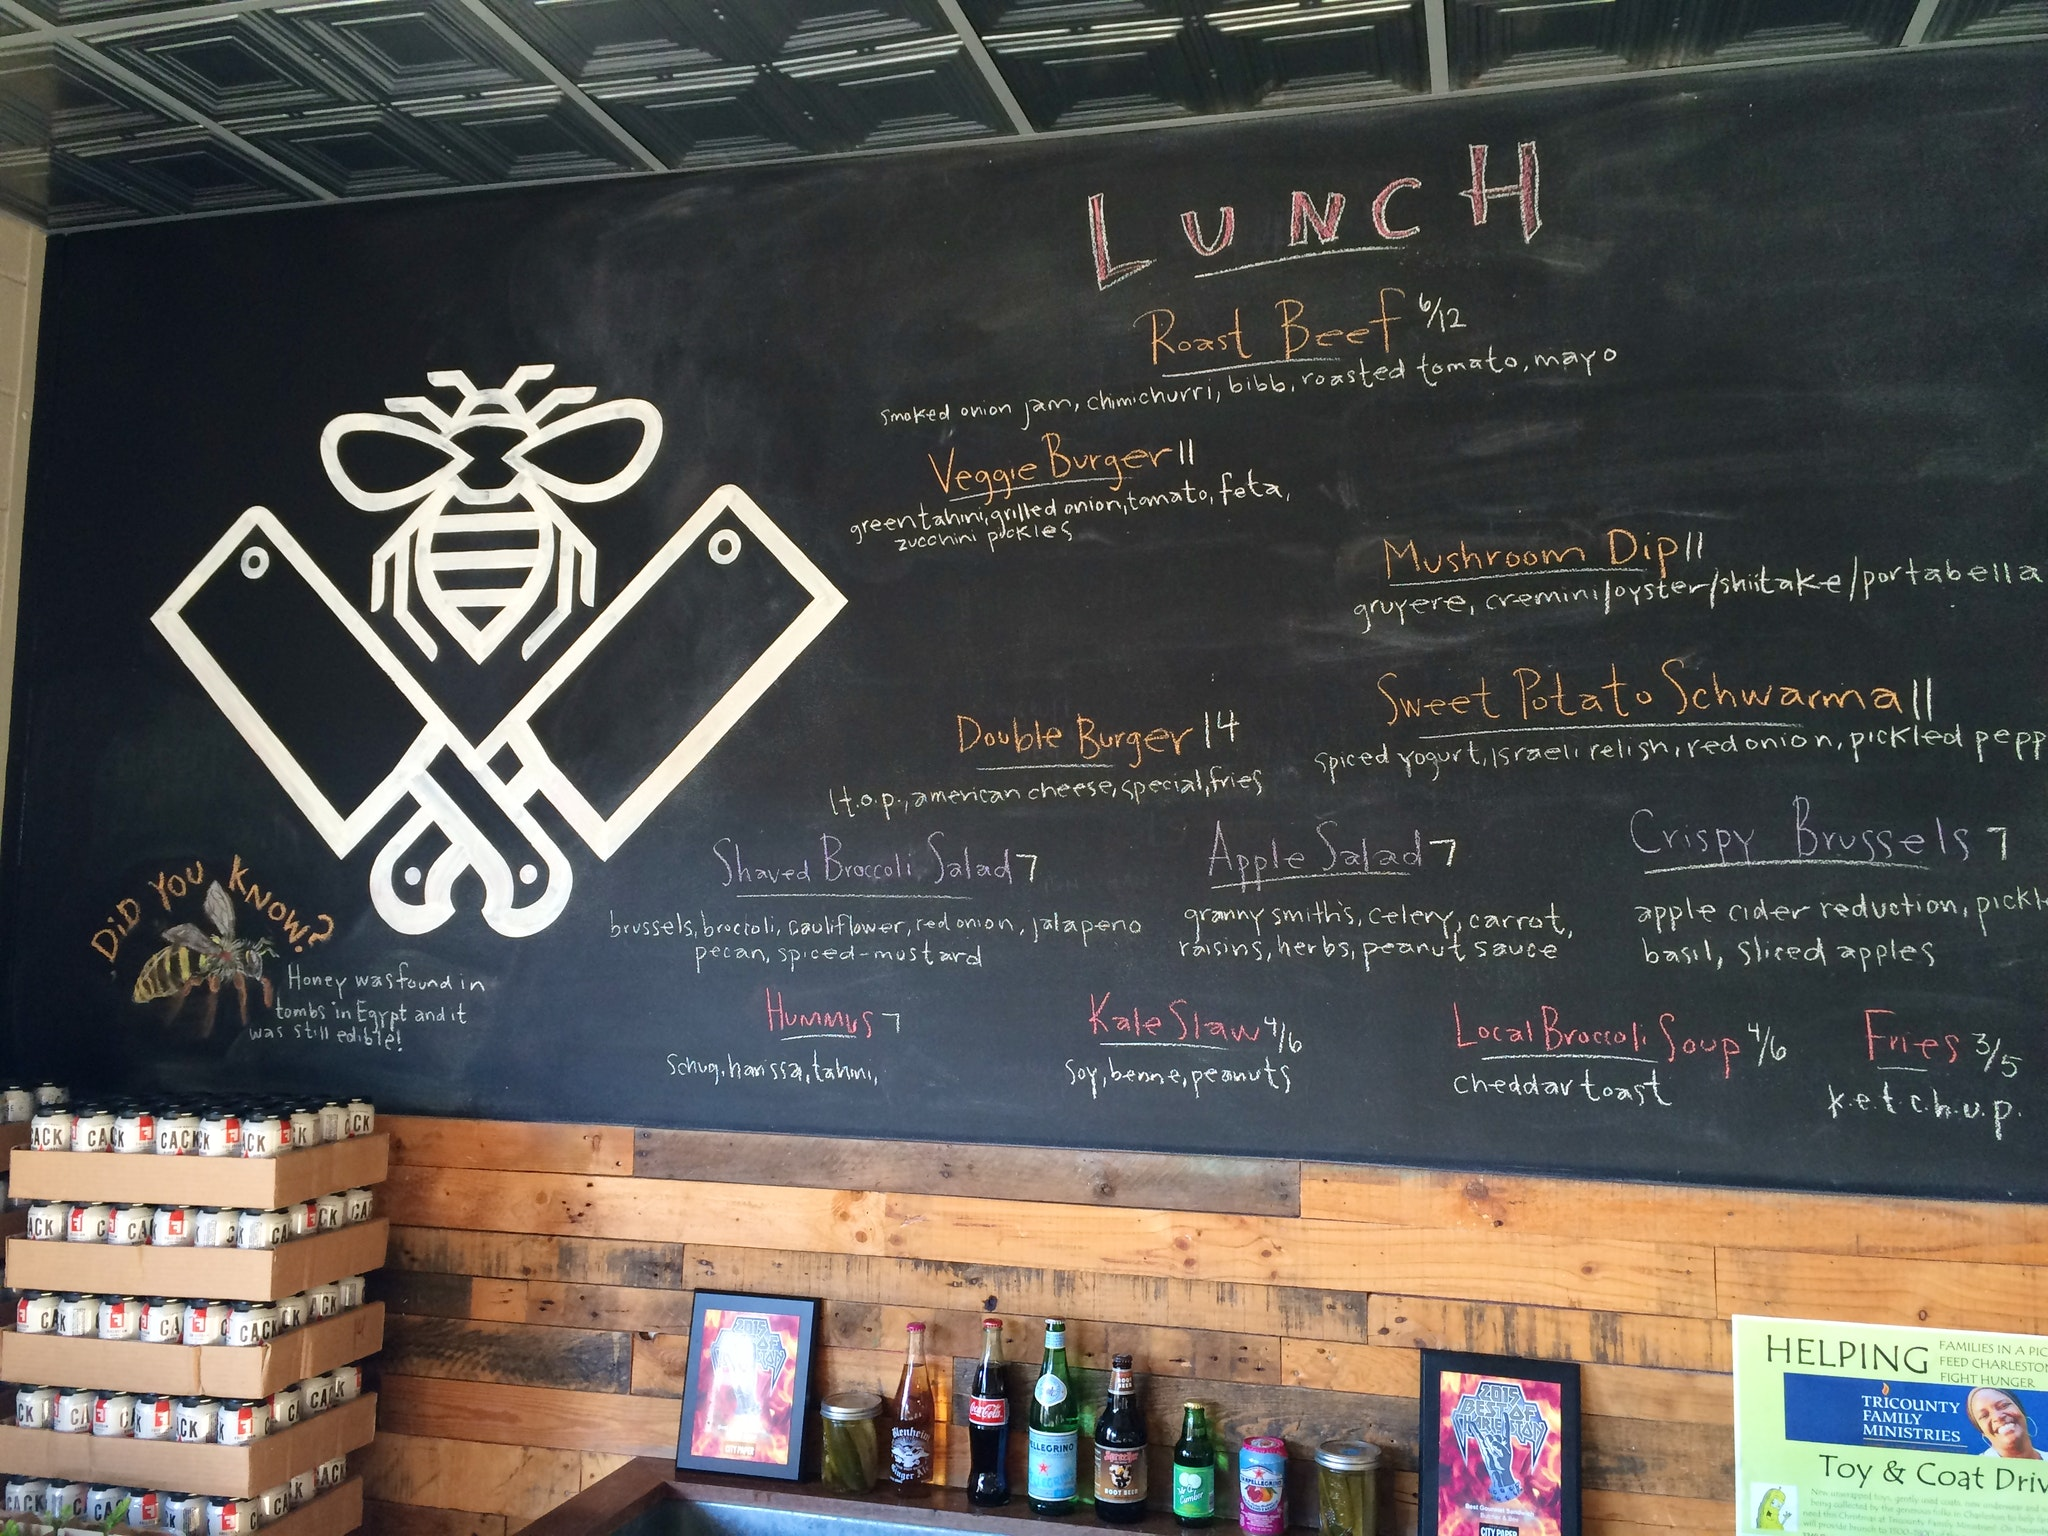 Butcher & Bee chalkboard menu